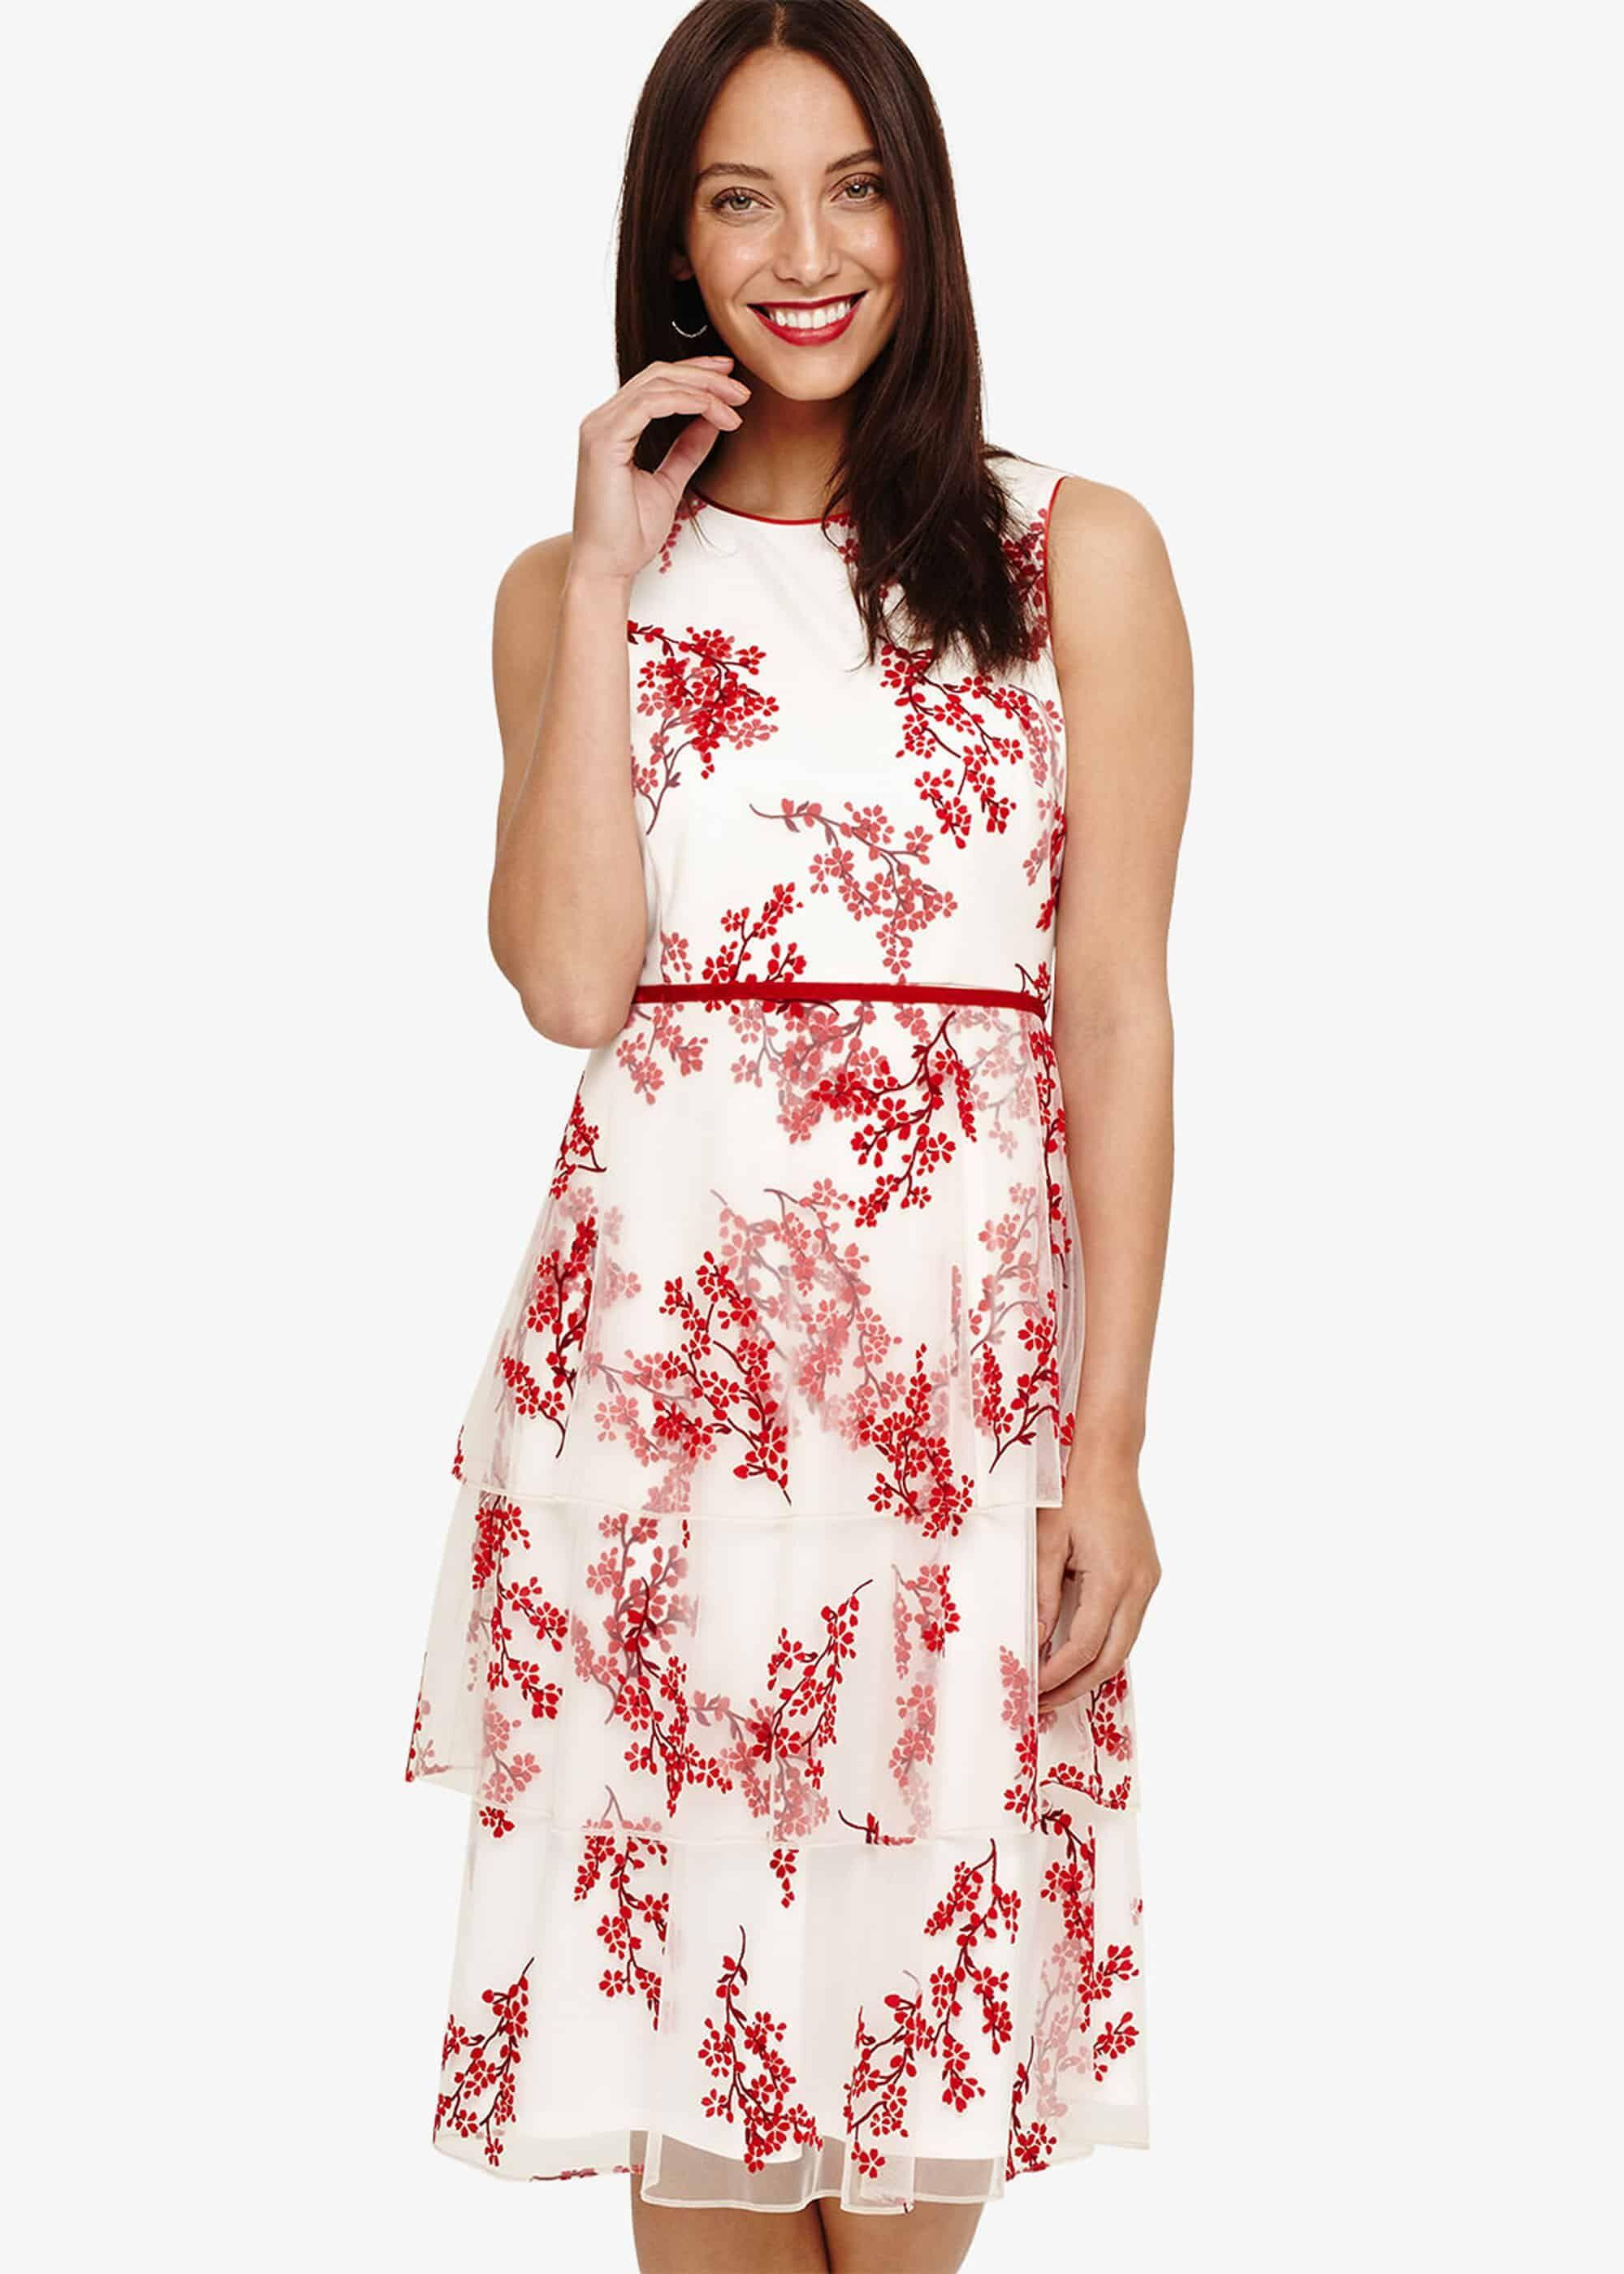 93a73223e0ce Tap to visit site. Phase Eight - White Francine Ditsy Floral Dress ...